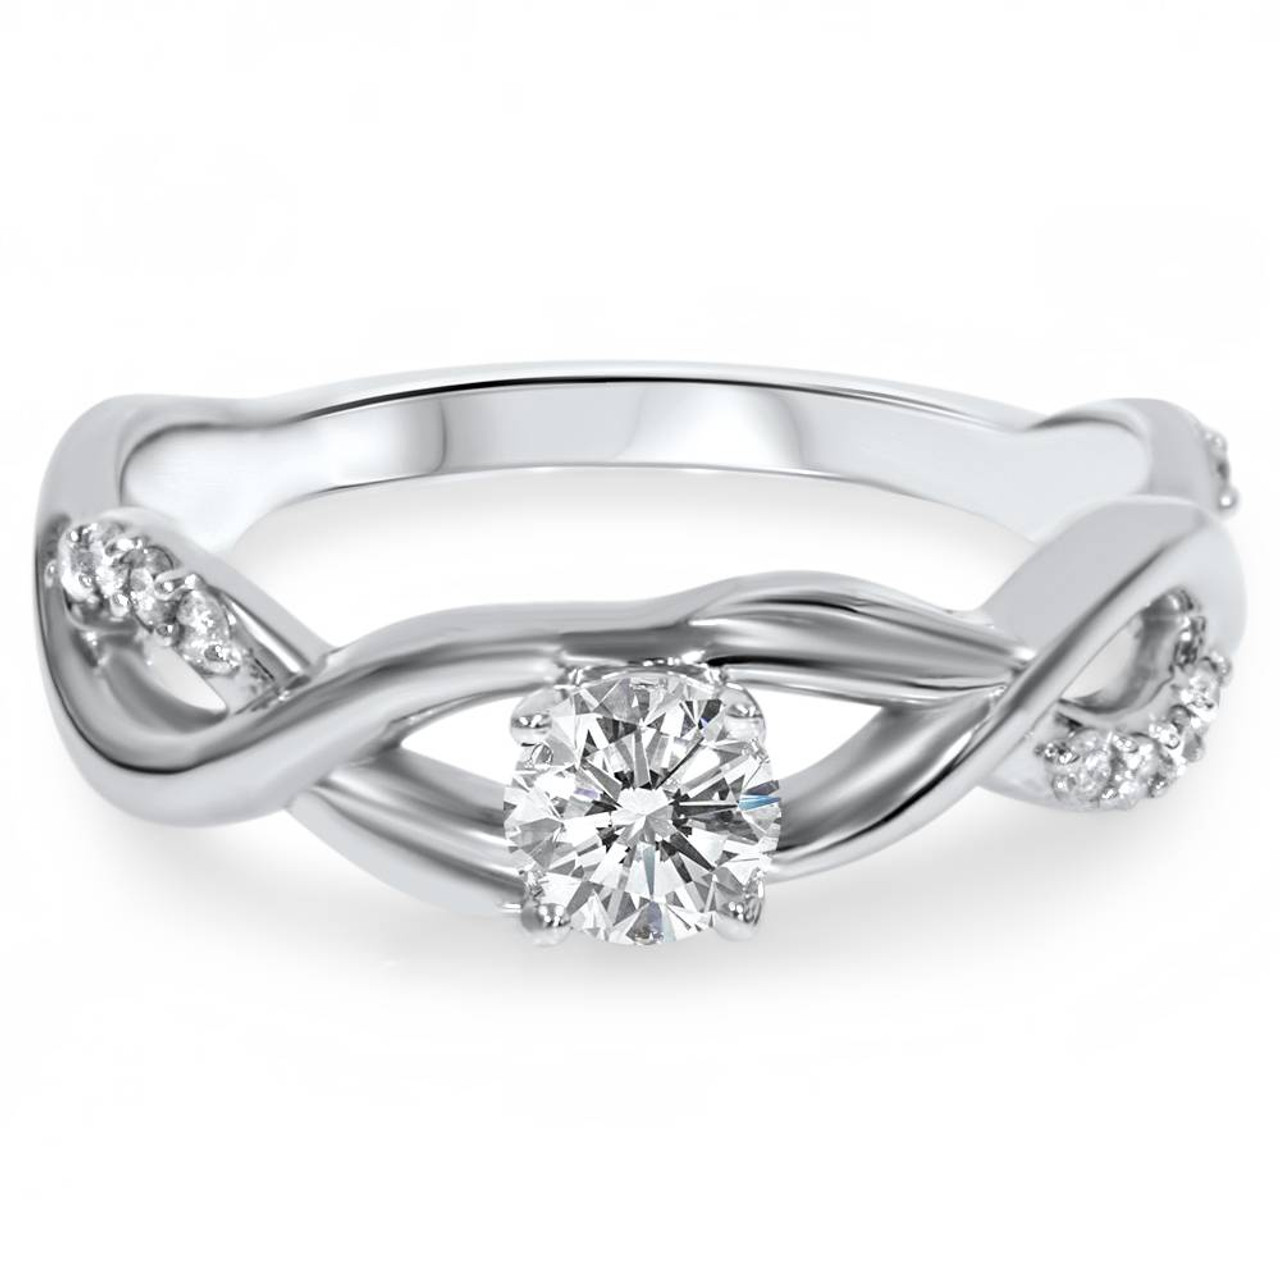 white p gold diamond ring tw accents infinity with engagement